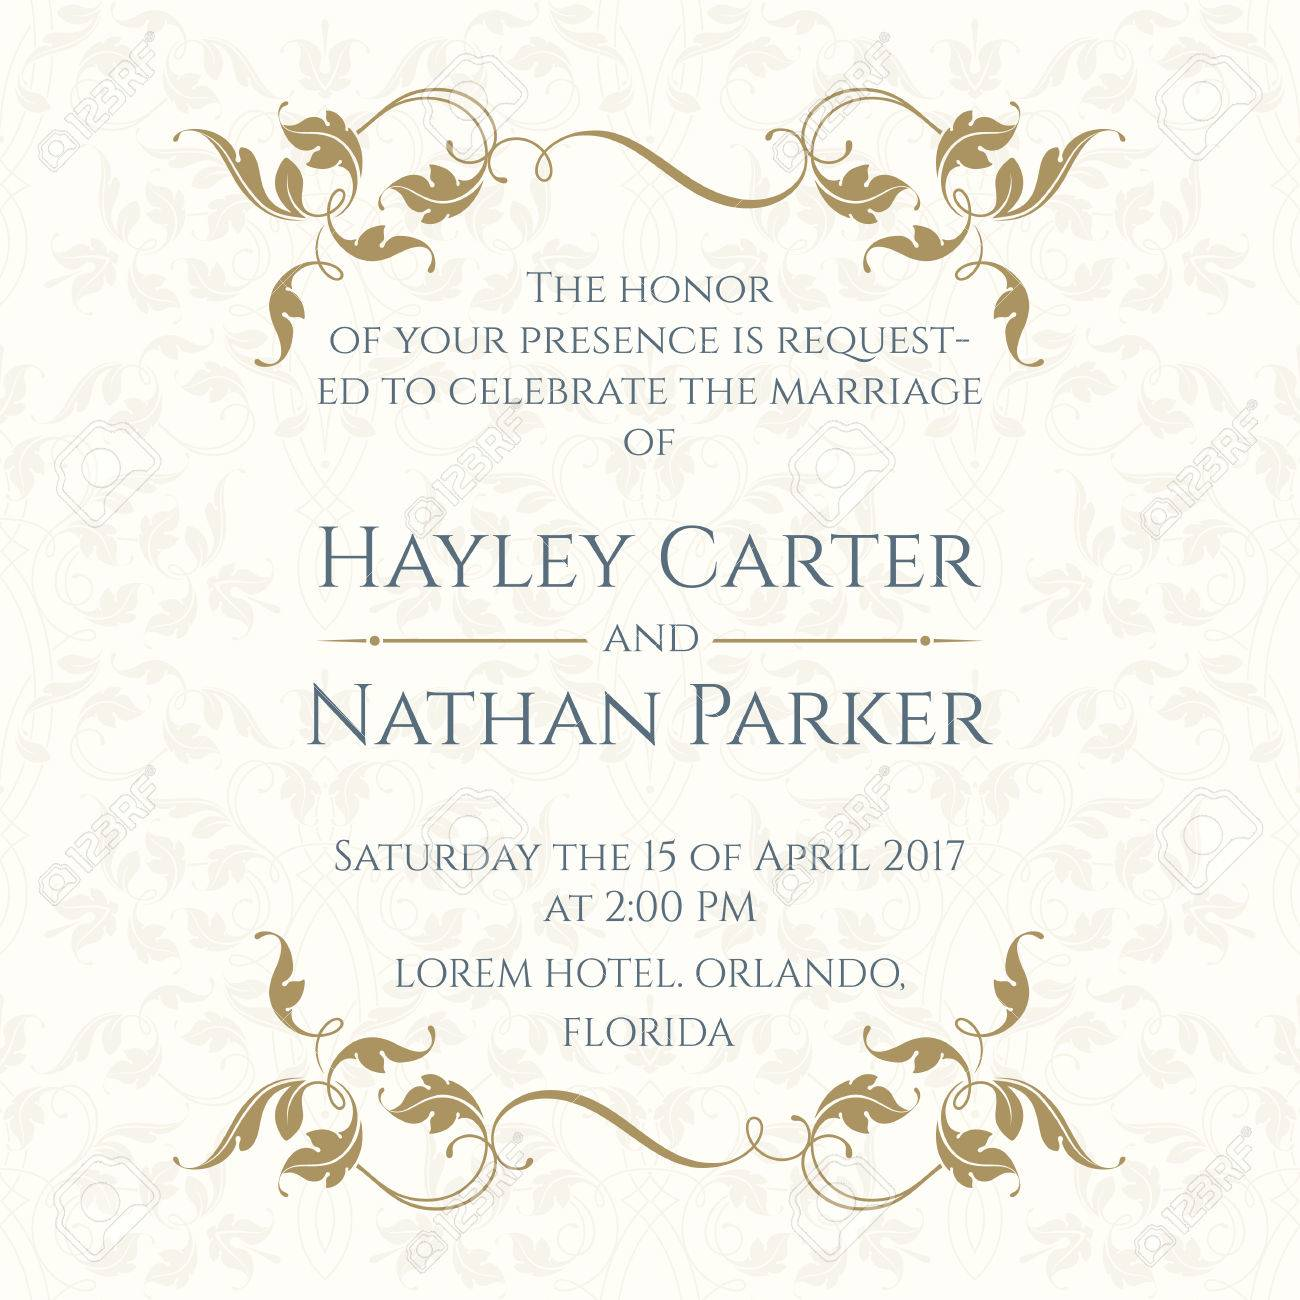 invitation card with floral borders on seamless background wedding